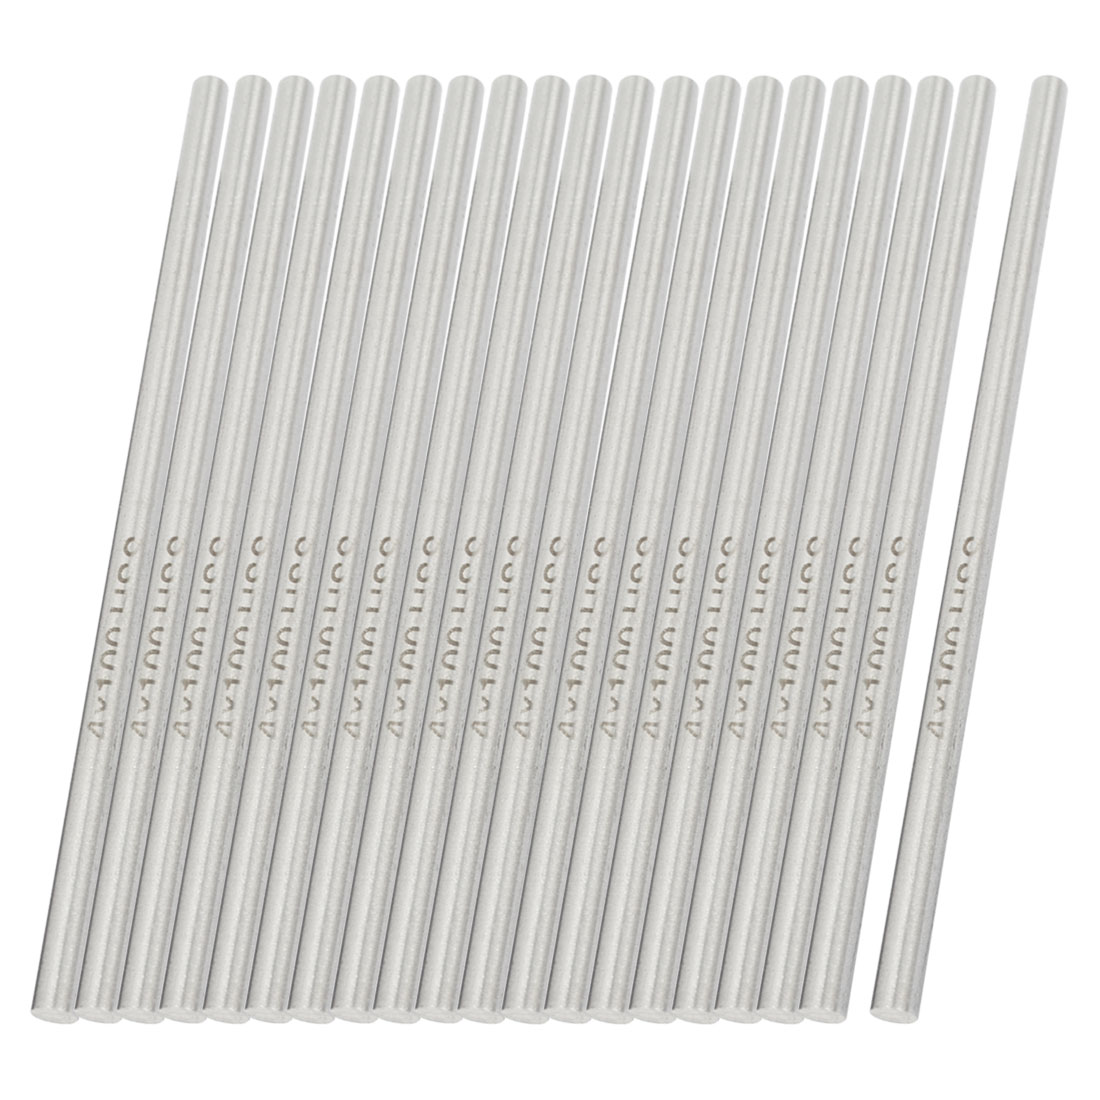 20pcs 4mmx100mm HSS High Speed Steel Turning Bars for CNC Lathe